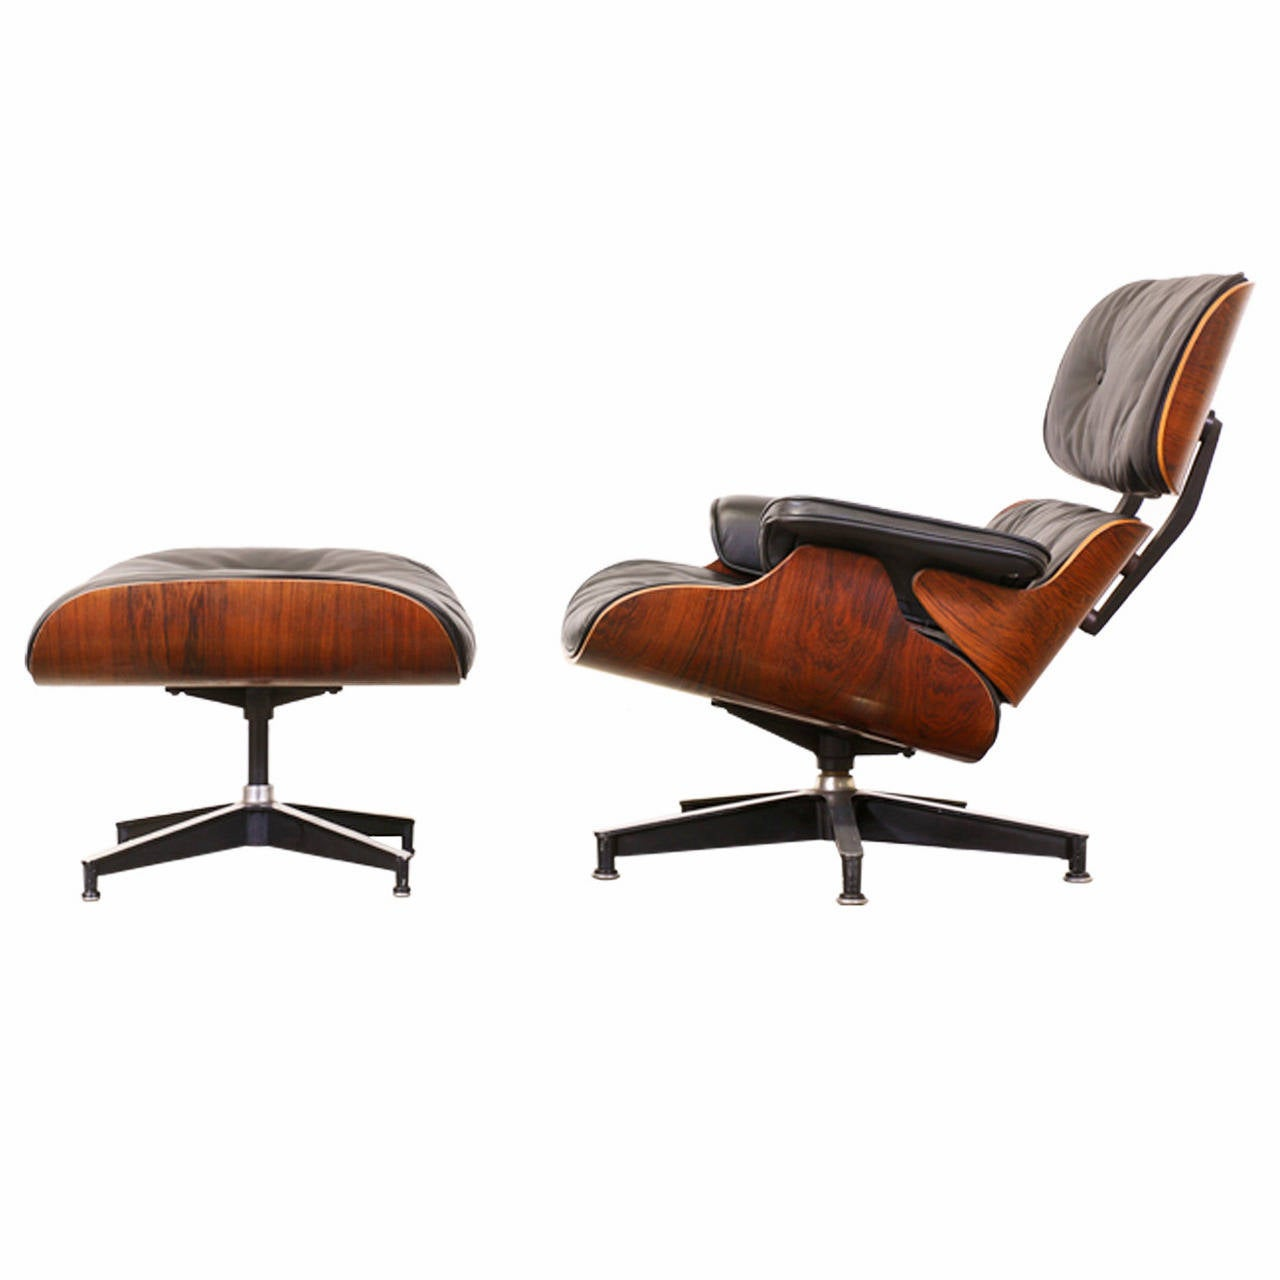 Eames Style Lounge Chair And Ottoman Oak White Leather : 1633062l from chairs52.com size 1280 x 1280 jpeg 59kB